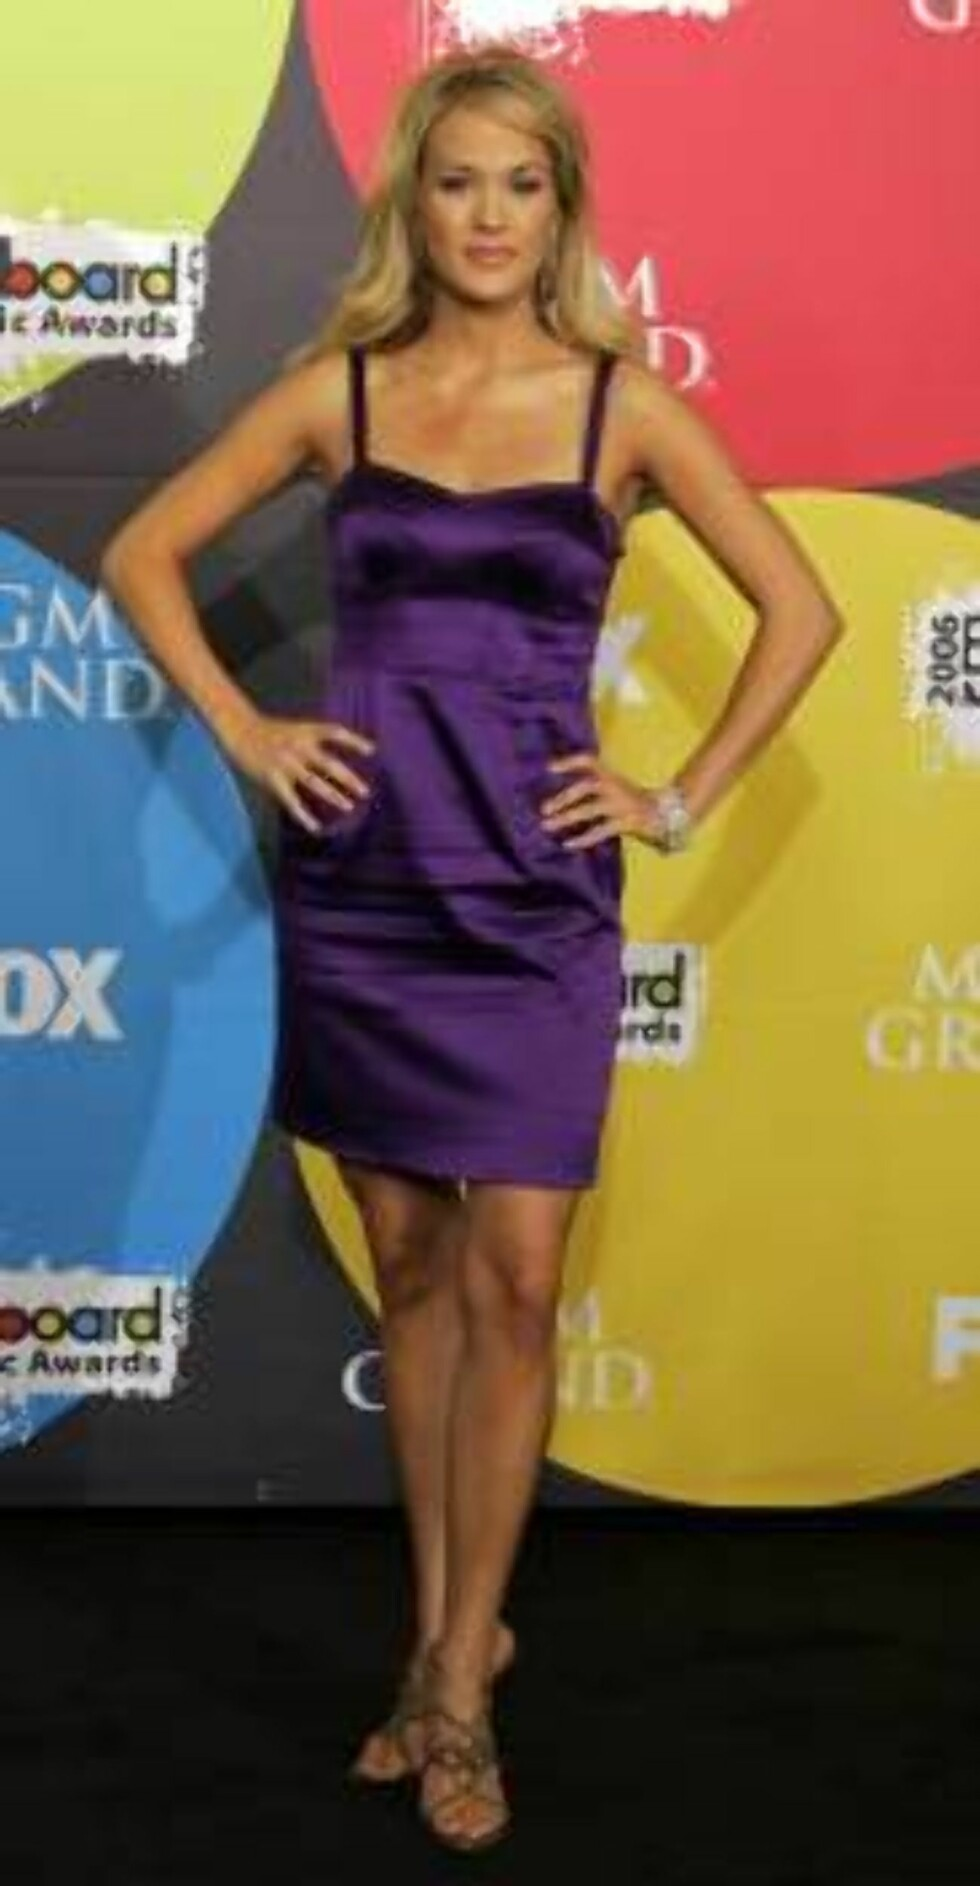 Carrie Underwood poses backstage at the Billboard Music Awards in Las Vegas, Monday, Dec. 4, 2006. (AP Photo/Chris Carlson) Foto: AP